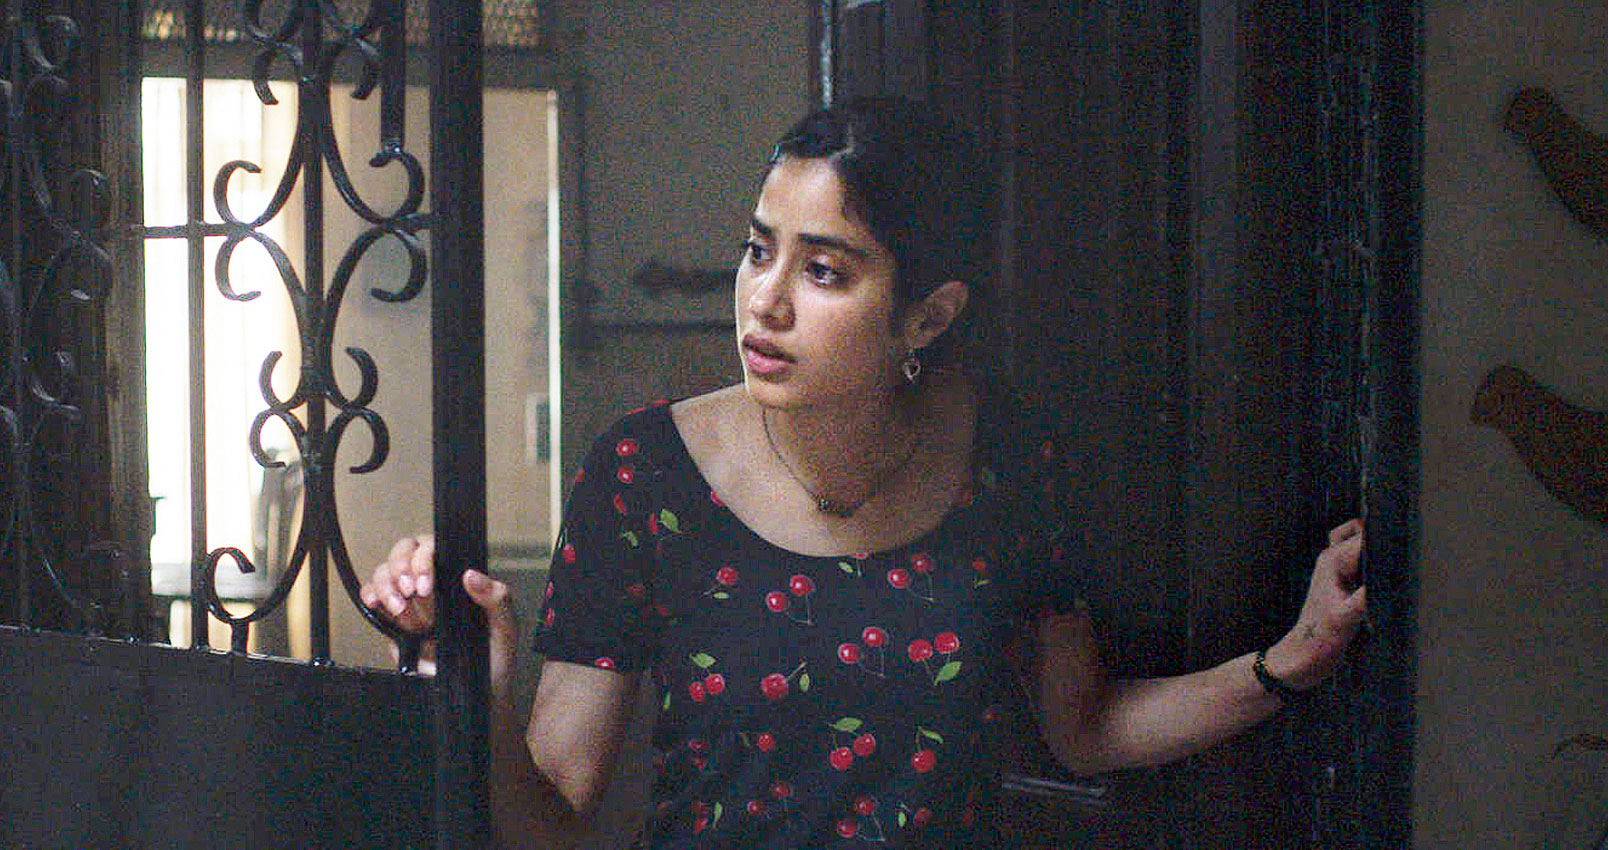 Janhvi Kapoor in Zoya Akhtar's segment in Ghost Stories, now streaming on Netflix